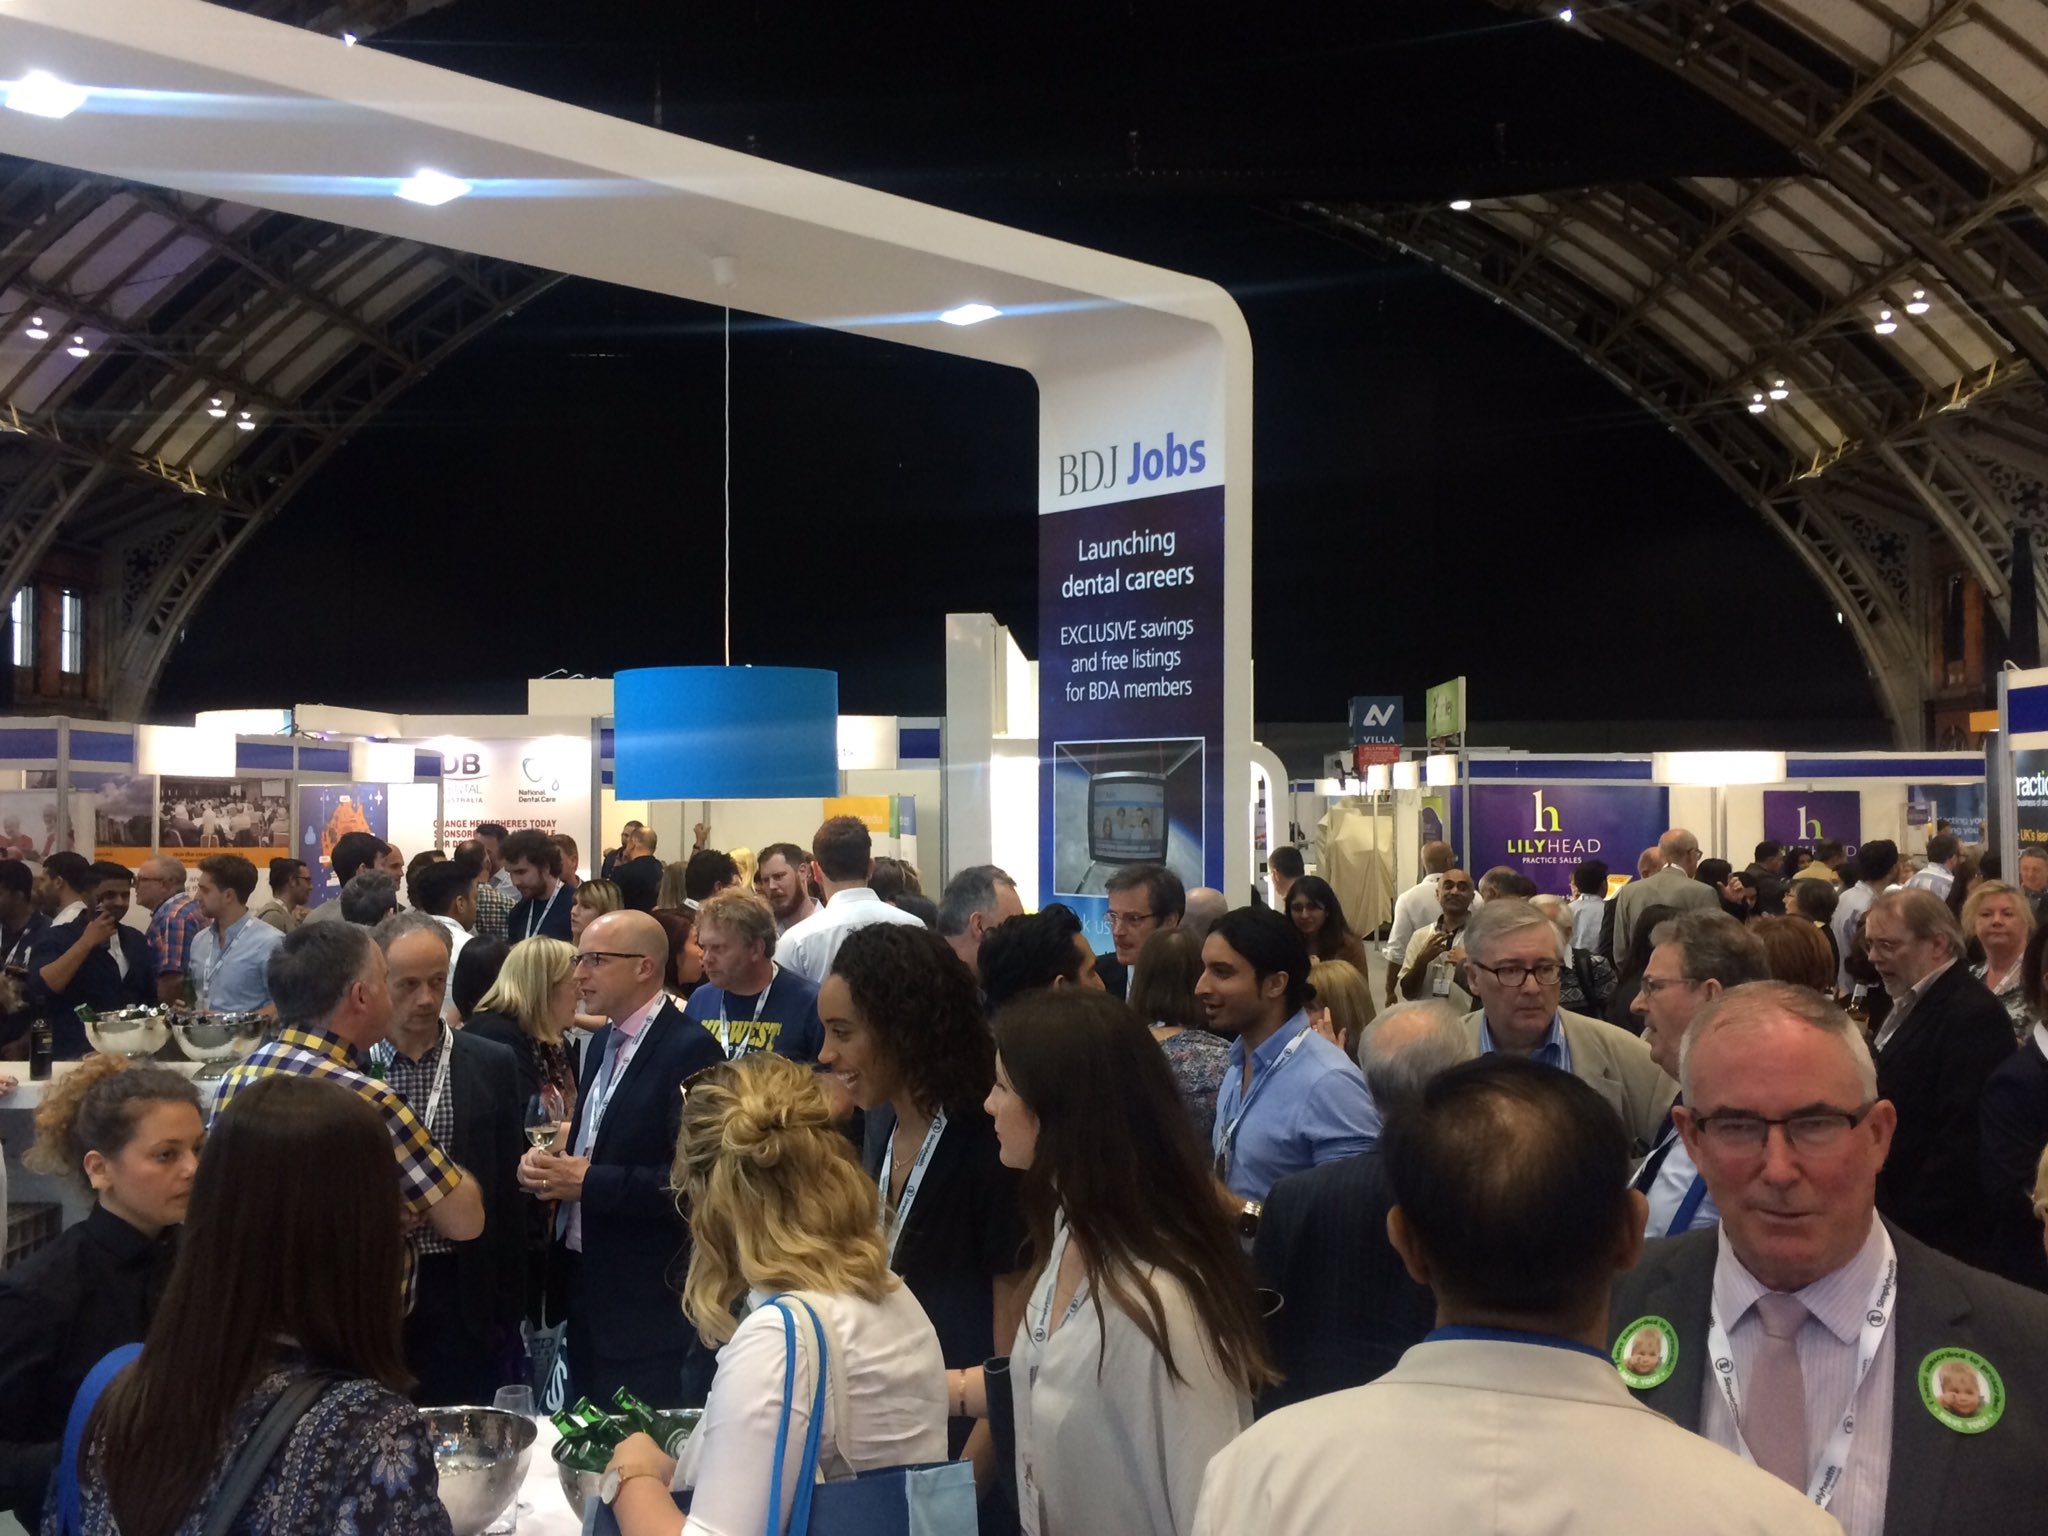 Wrapping up a fantastic first day here in Manchester! See you tomorrow #BDA2017 https://t.co/mcIAQoSVv7